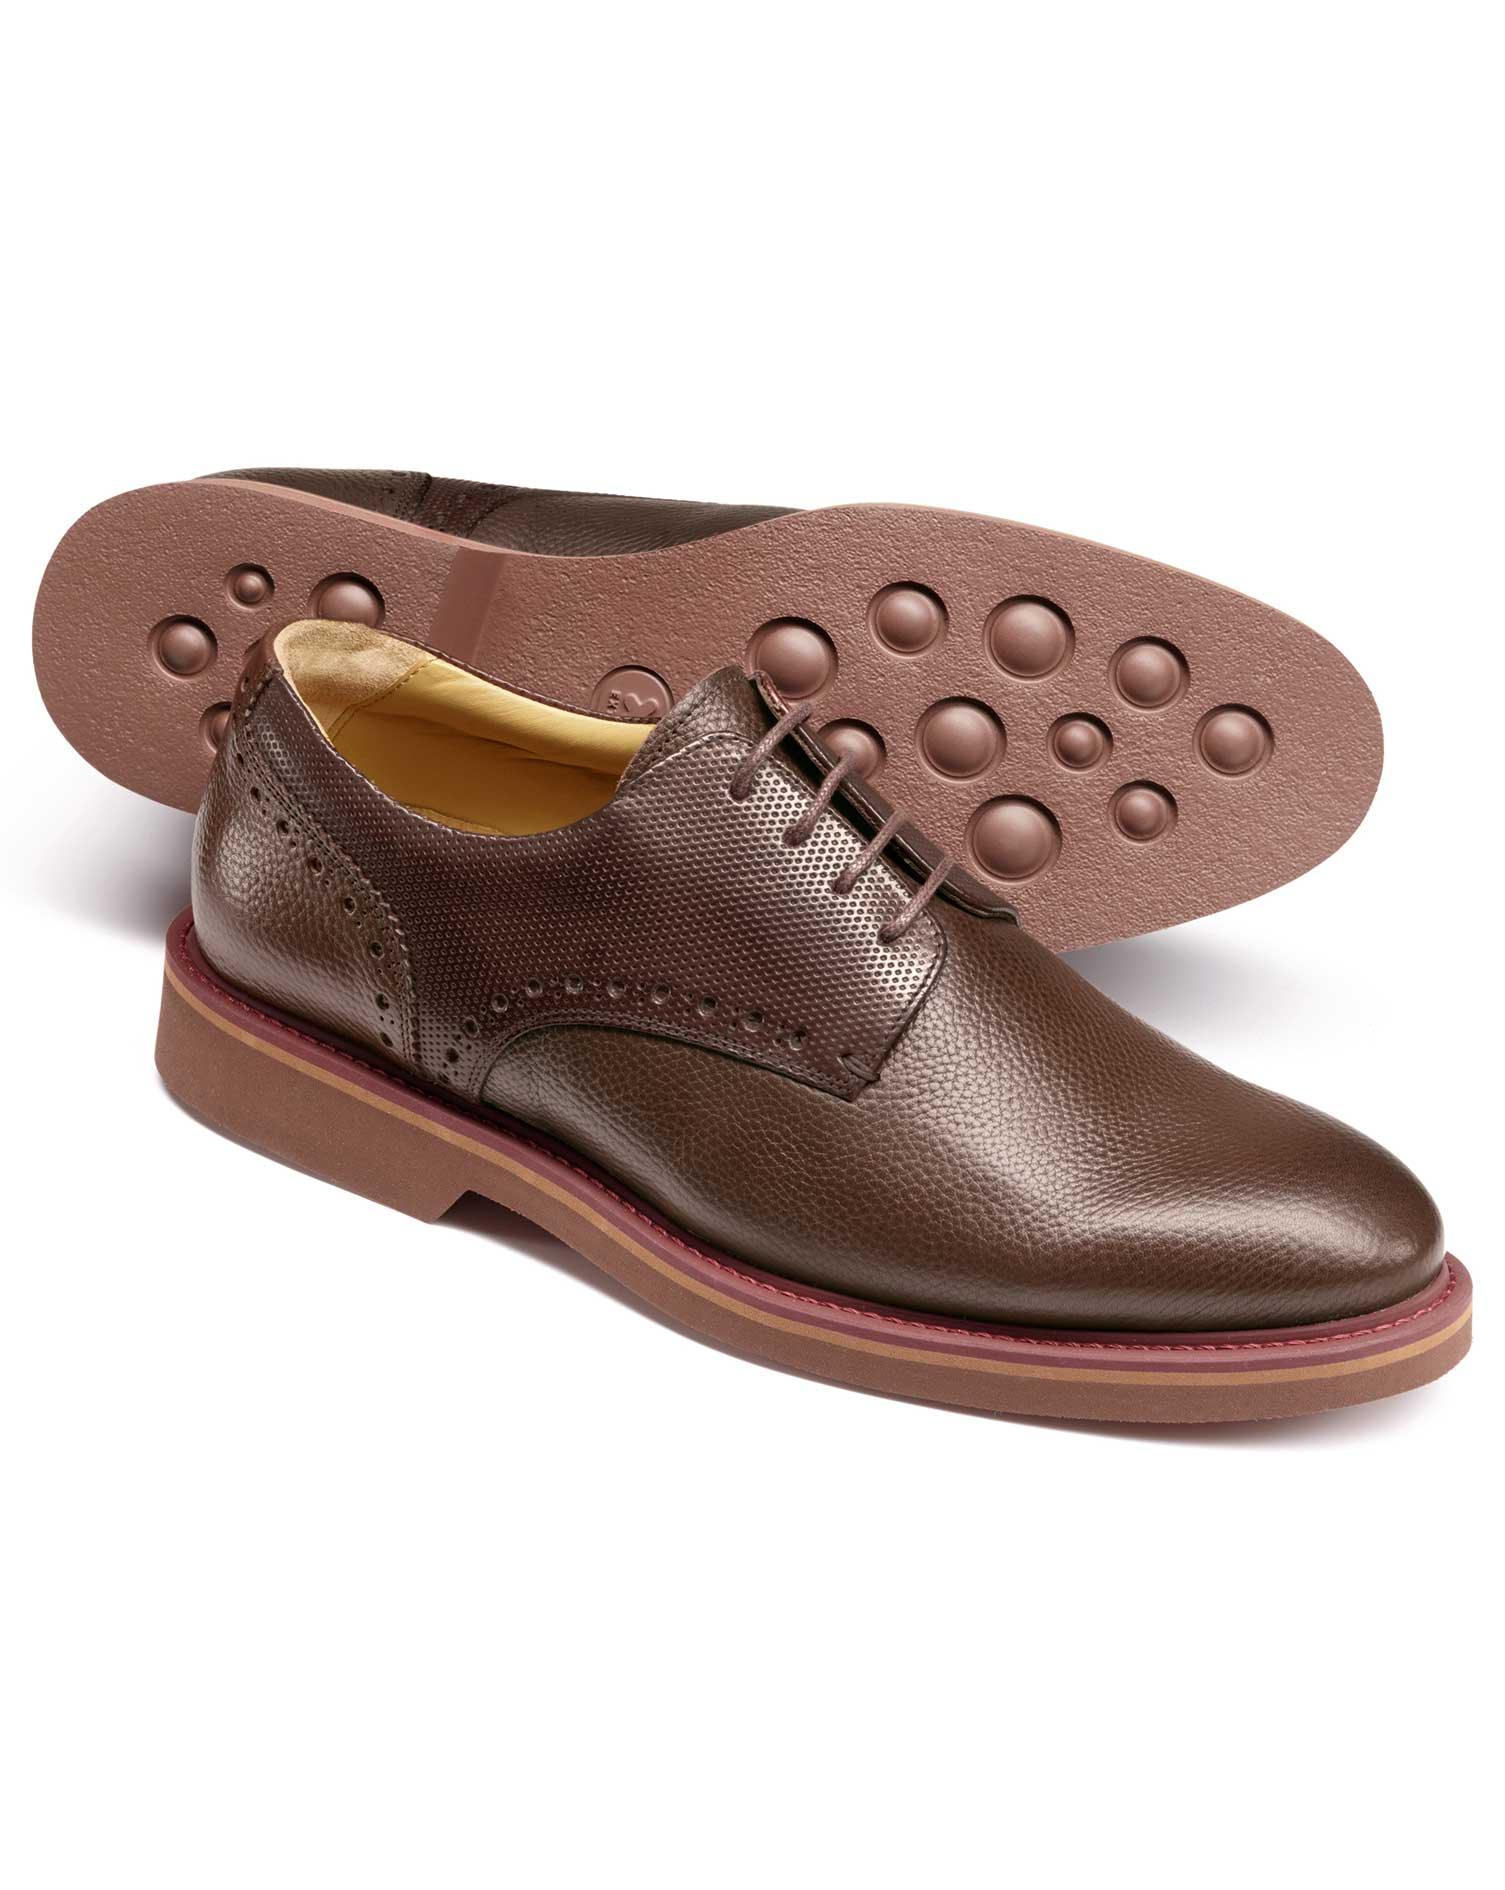 brown extra lightweight derby shoes size 12 by charles tyrwhitt